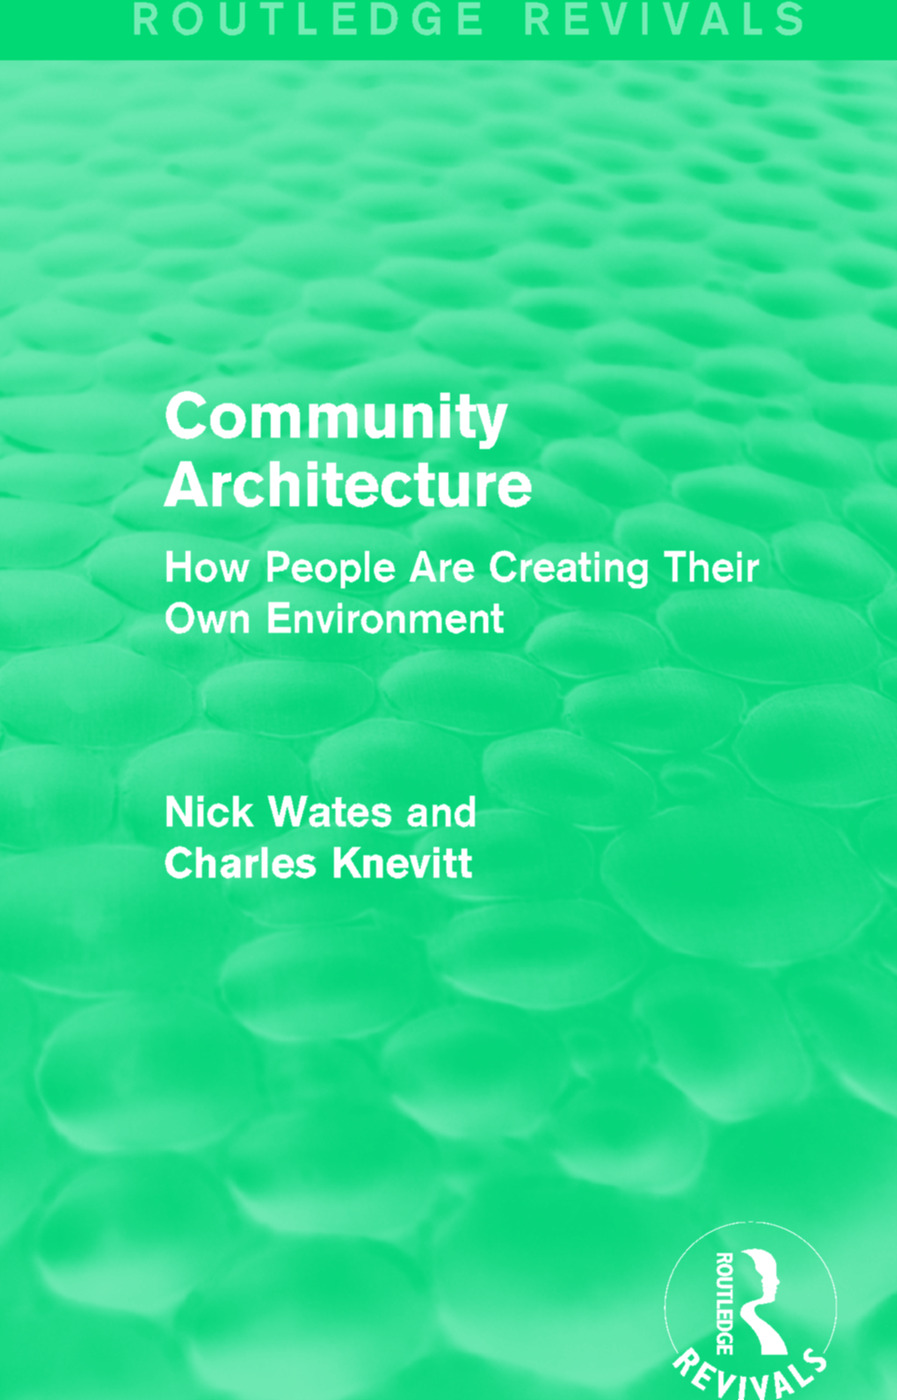 Community Architecture (Routledge Revivals): How People Are Creating Their Own Environment book cover